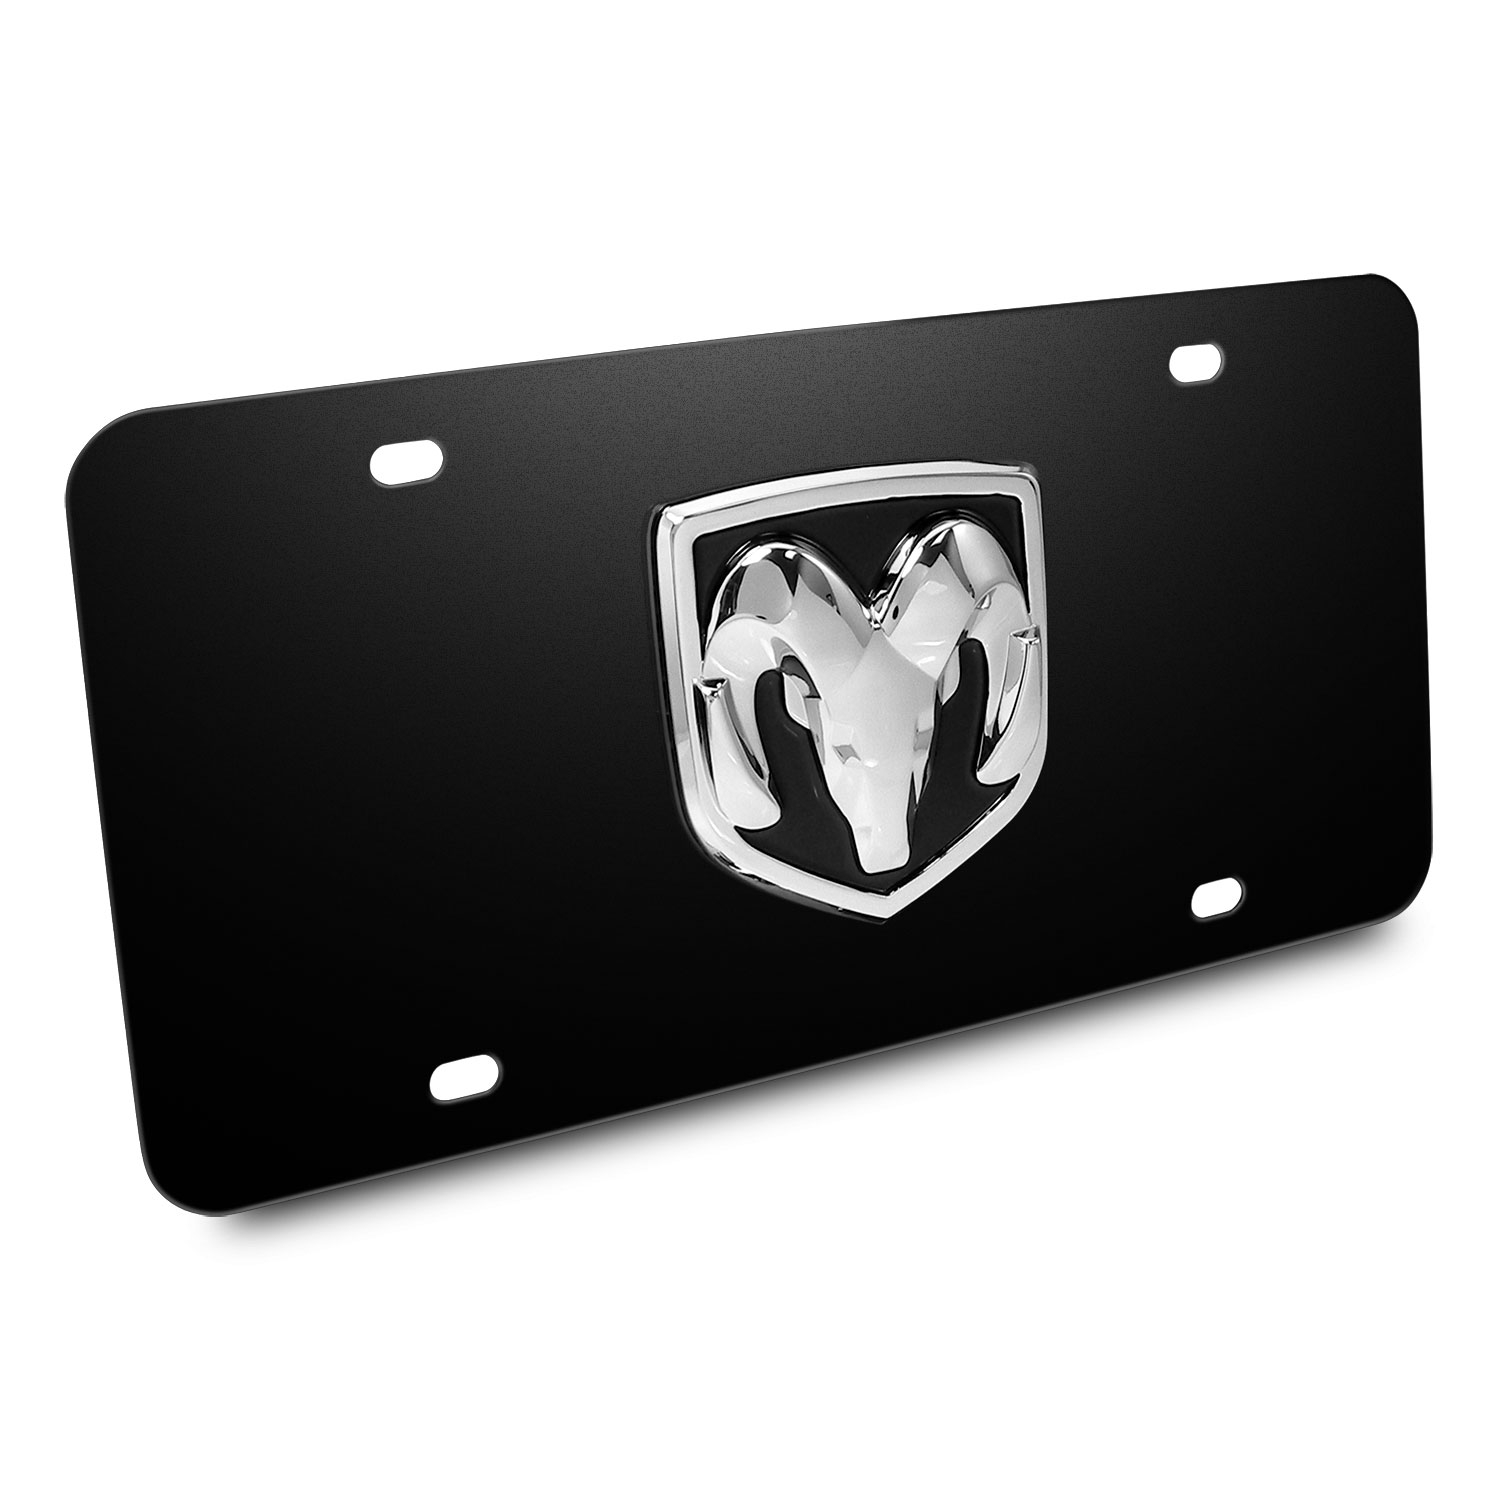 RAM 3D Logo Black Stainless Steel License Plate